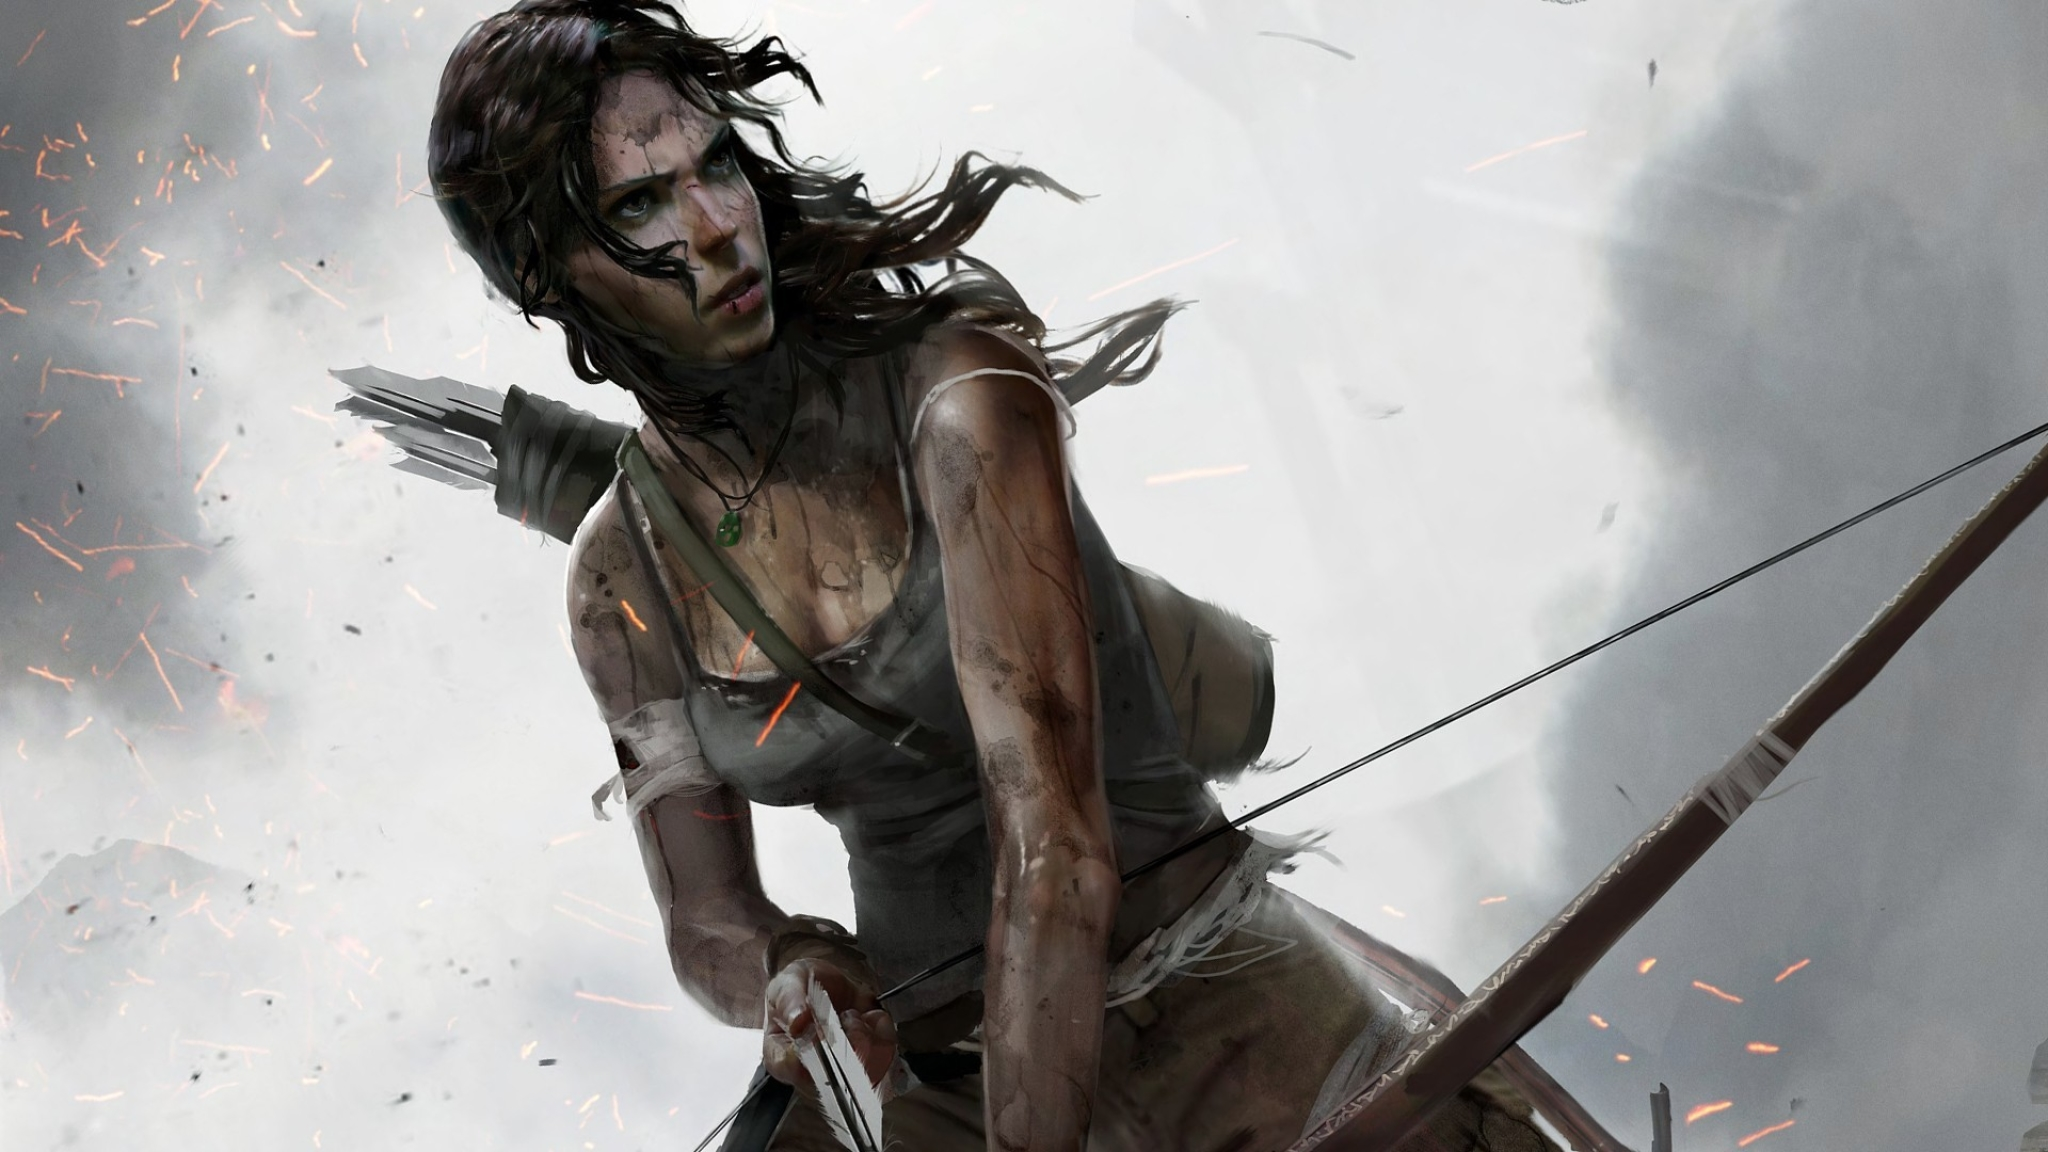 2048x1152 Tomb Raider Definitive Edition Lara Croft Tomb Raider